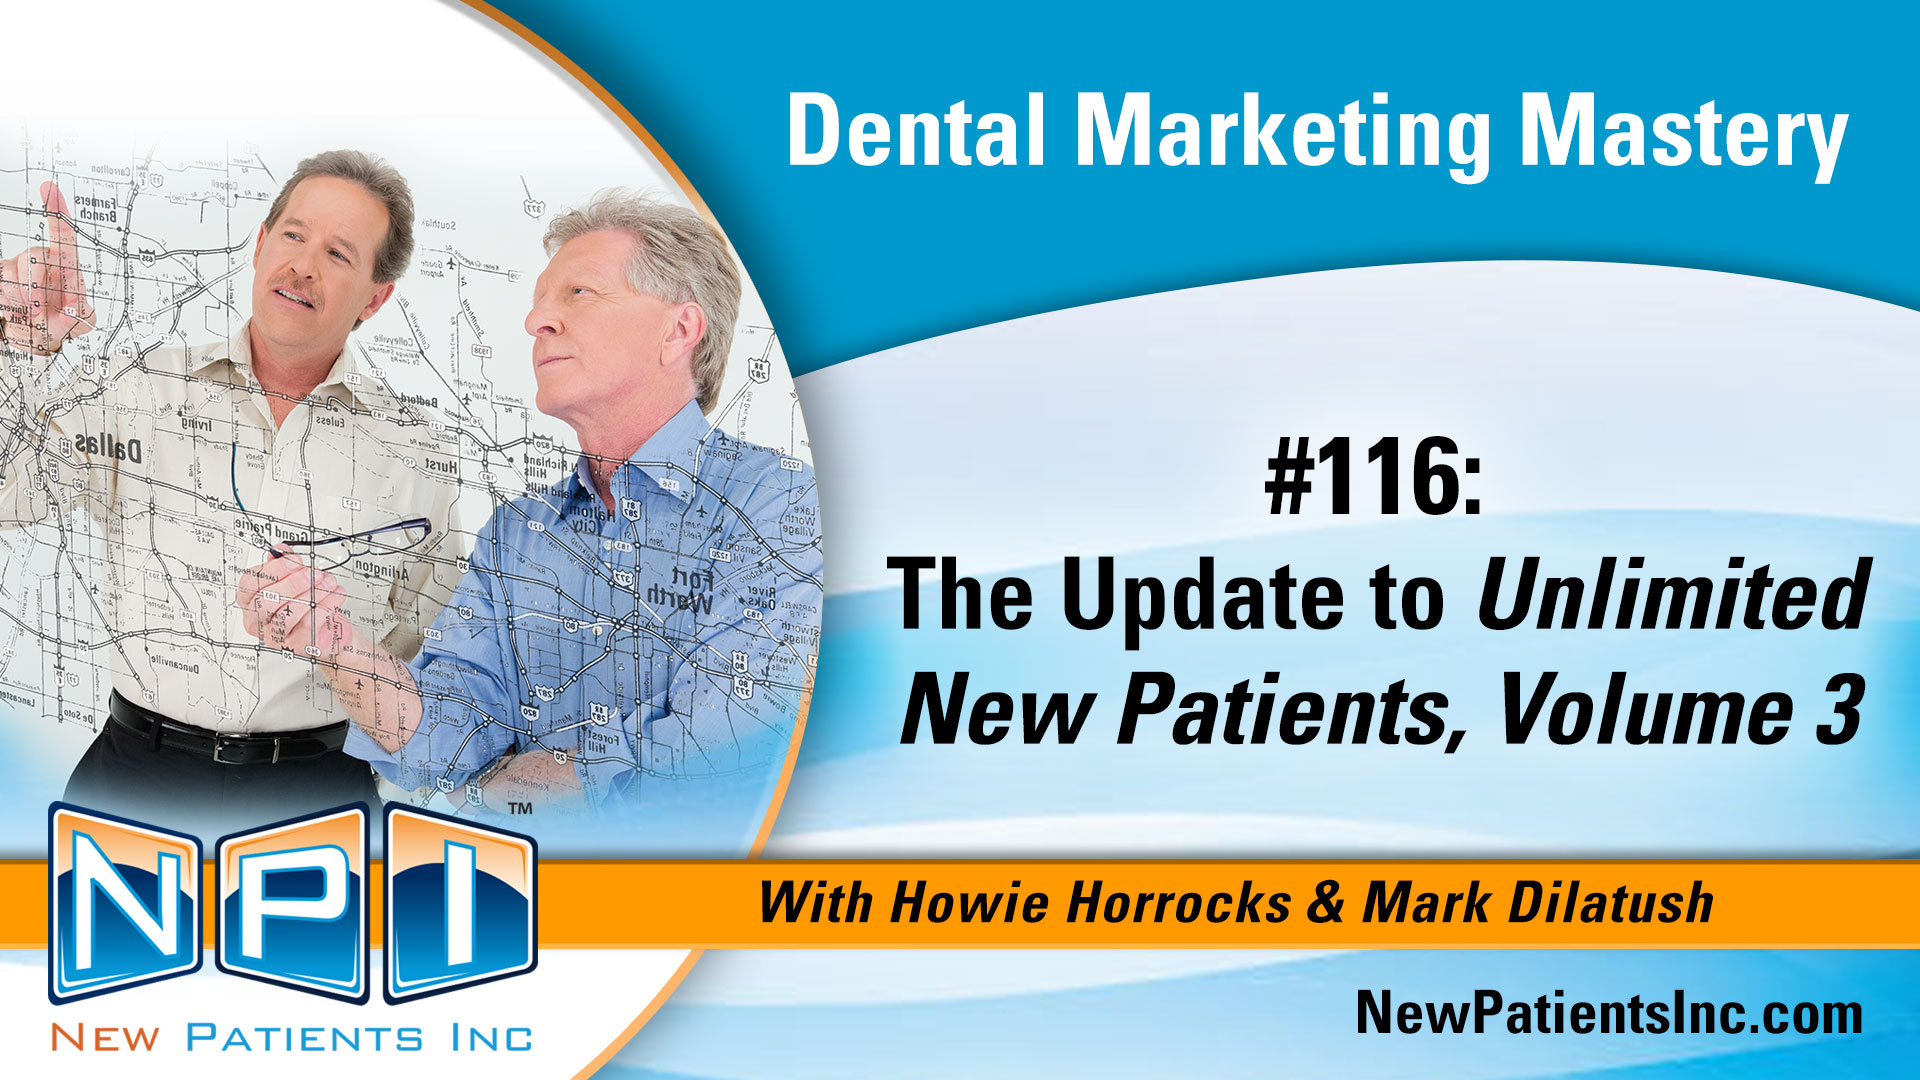 The Update to Unlimited New Patients, Volume 3